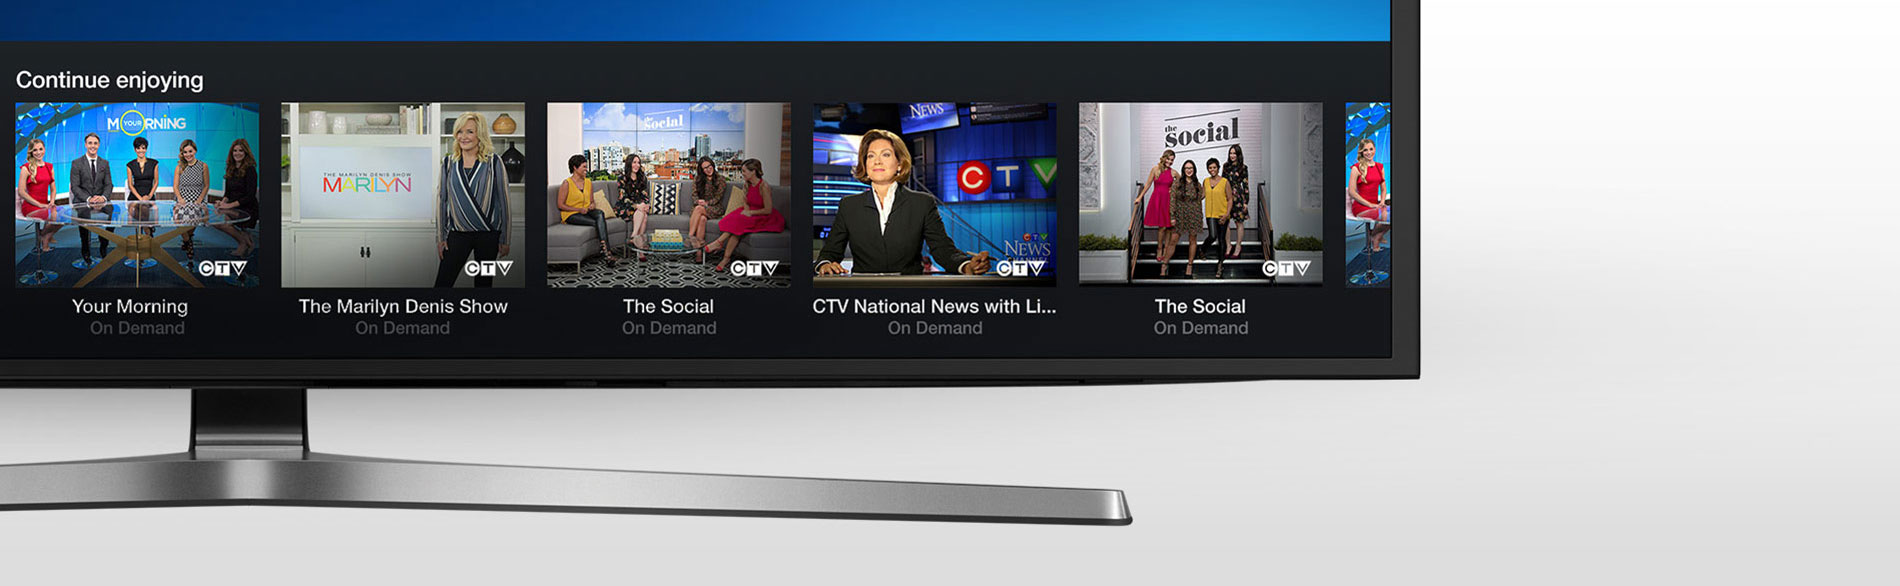 Fibe Tv App Bell Canada Fuse Xbox 360 Amazon Bring To More Tvs